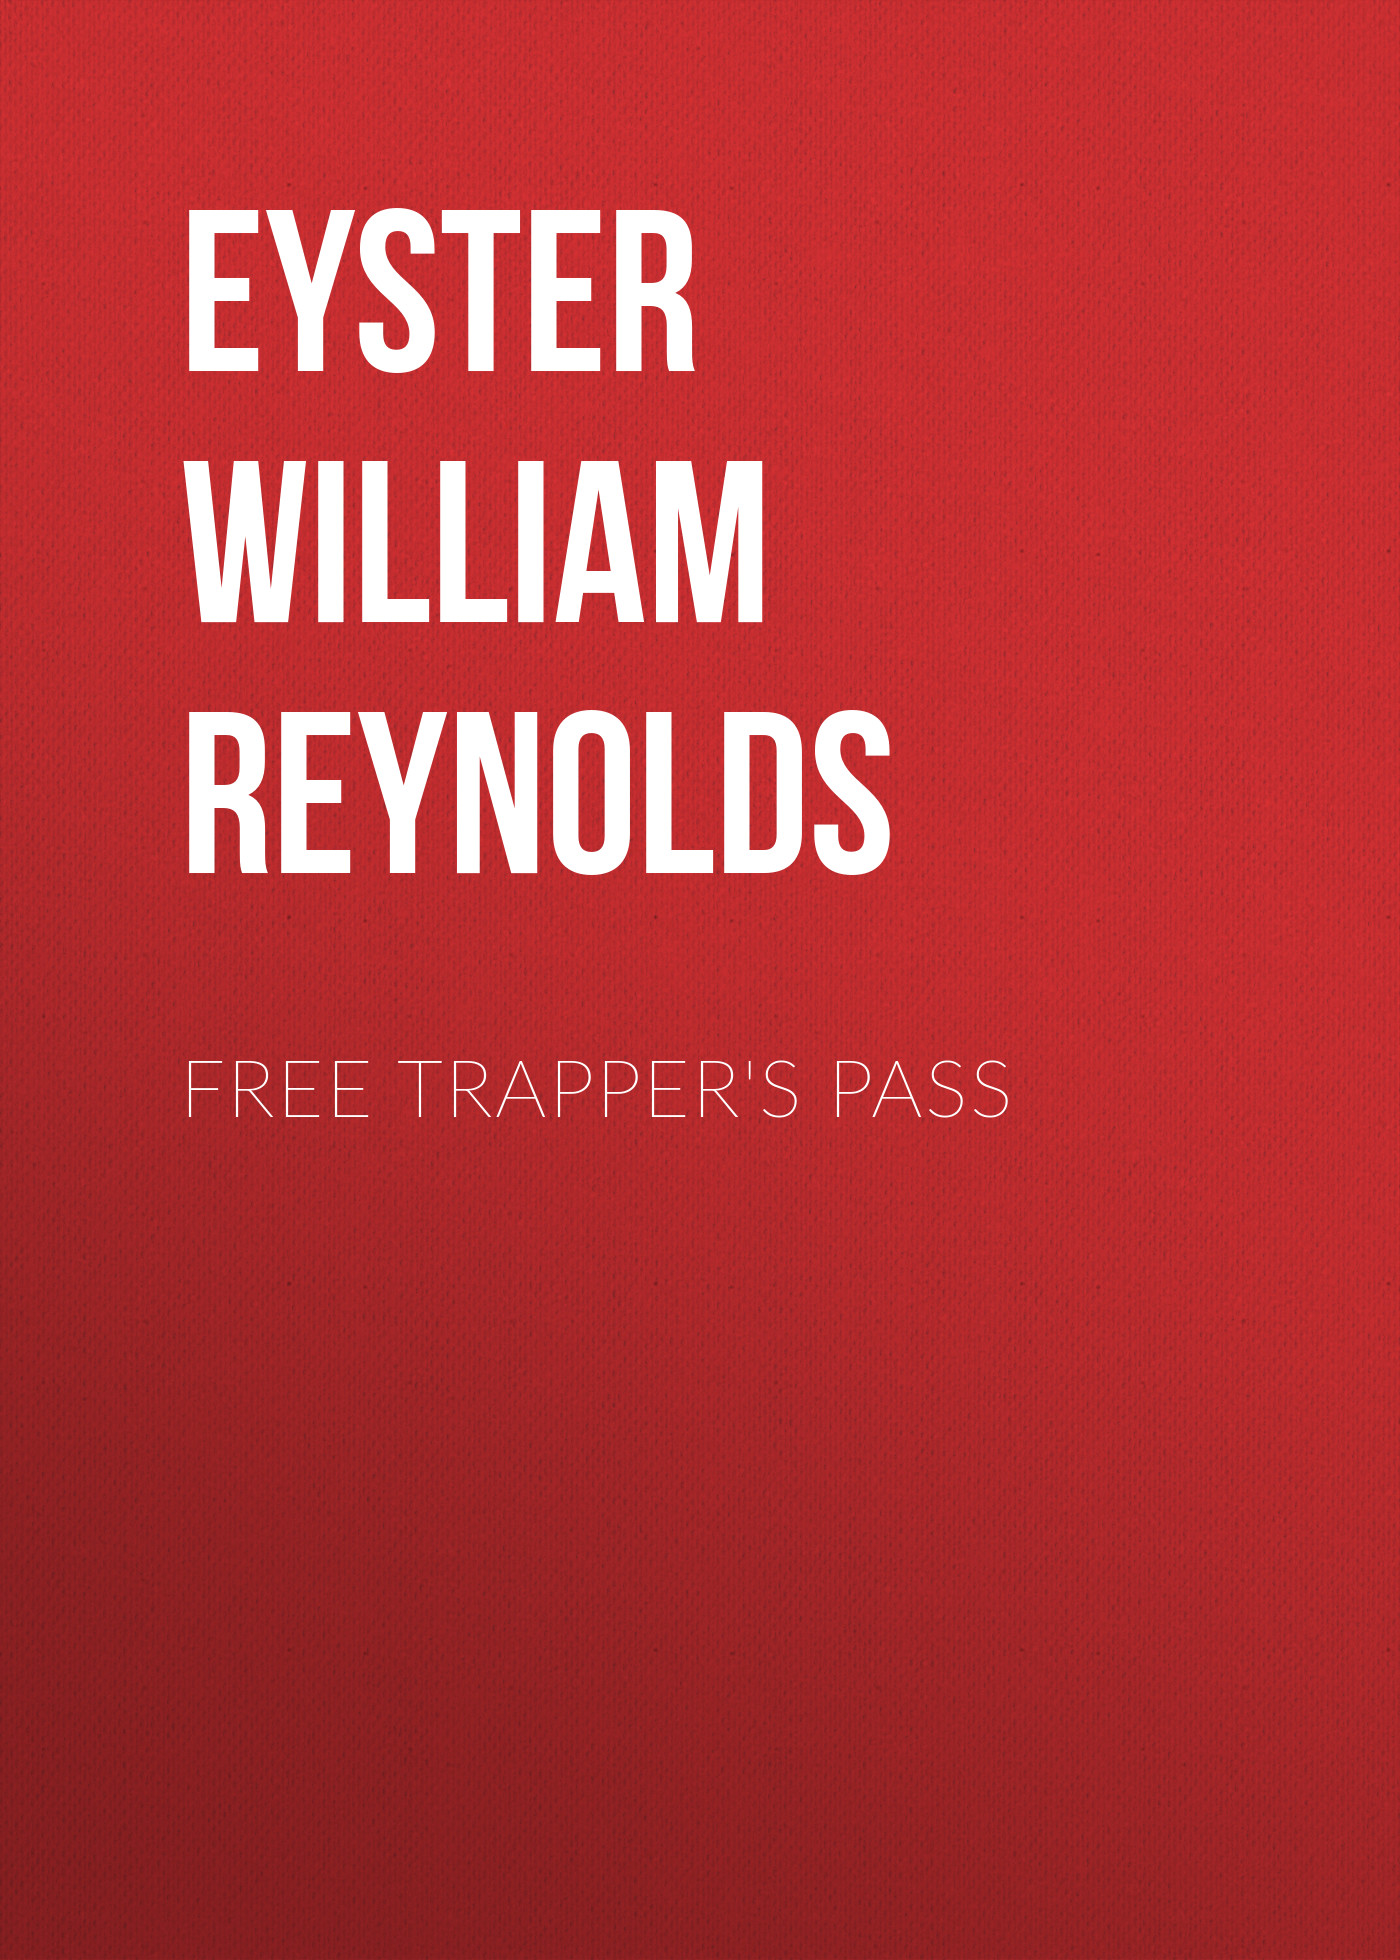 Eyster William Reynolds Free Trapper's Pass world superbike argentina 2018 pass